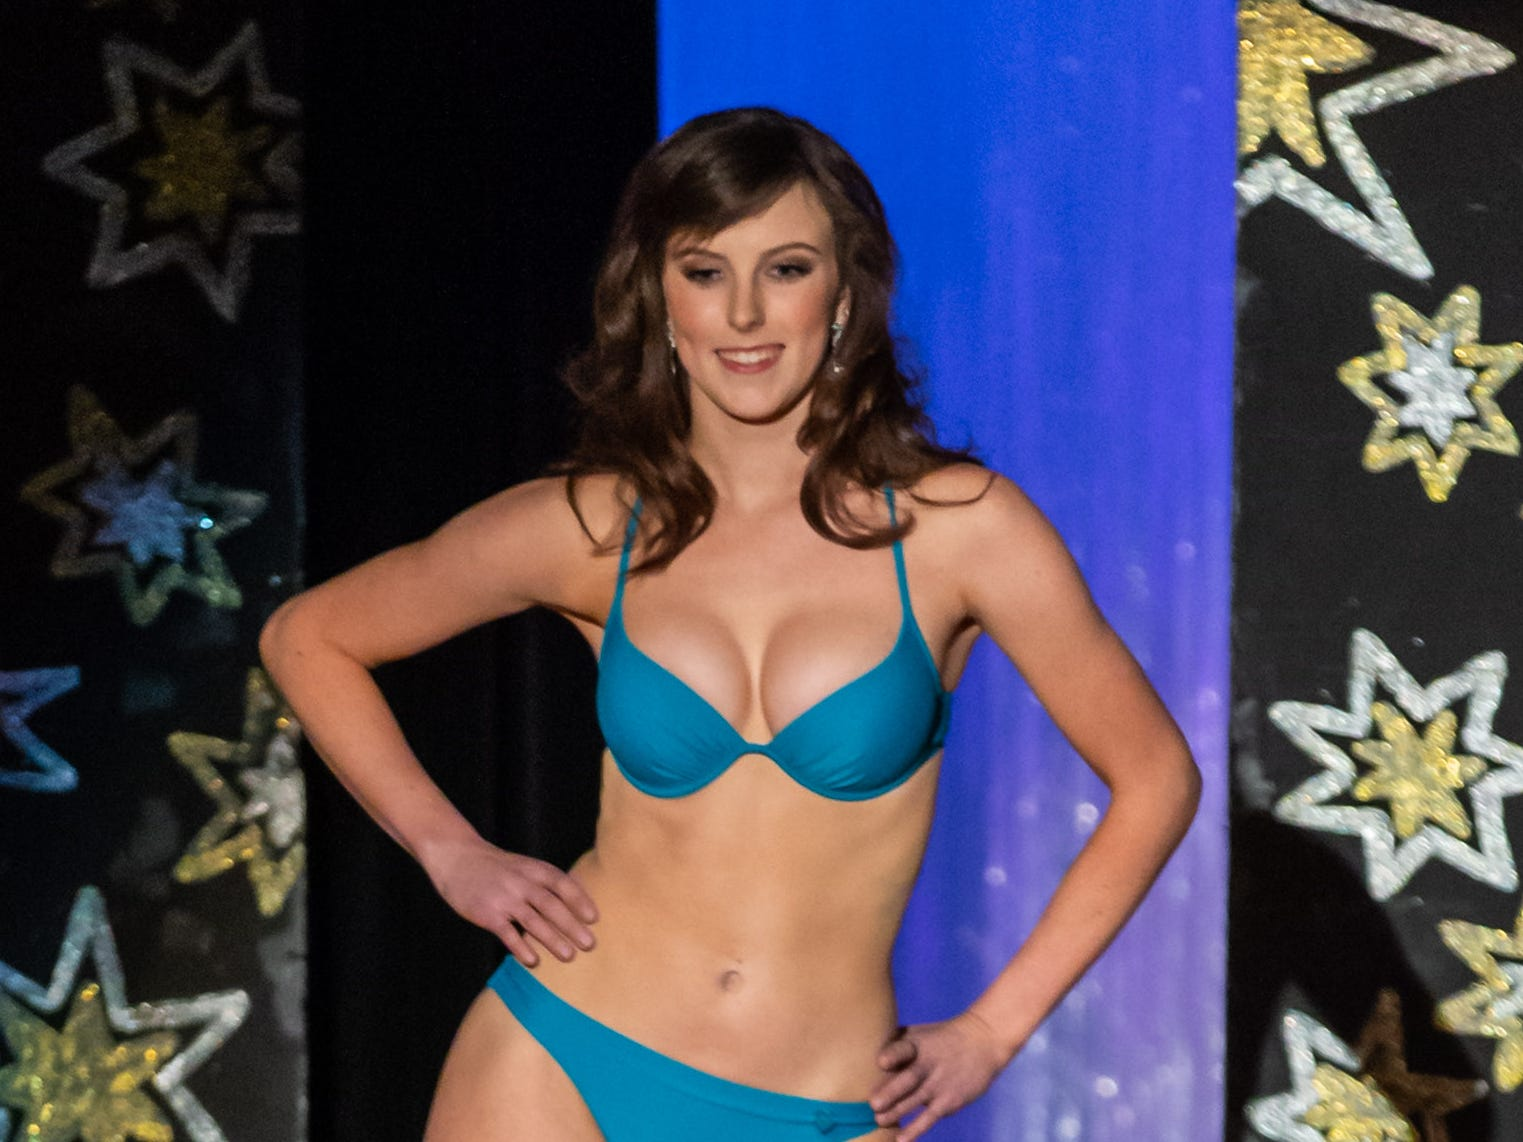 Erin Zielinski, sponsored by the St. Francis Civic Association, competes in the swimsuit segment of the 55th annual Miss St. Francis Scholarship Competition at St. Thomas More High School on Saturday, Feb. 2, 2019.